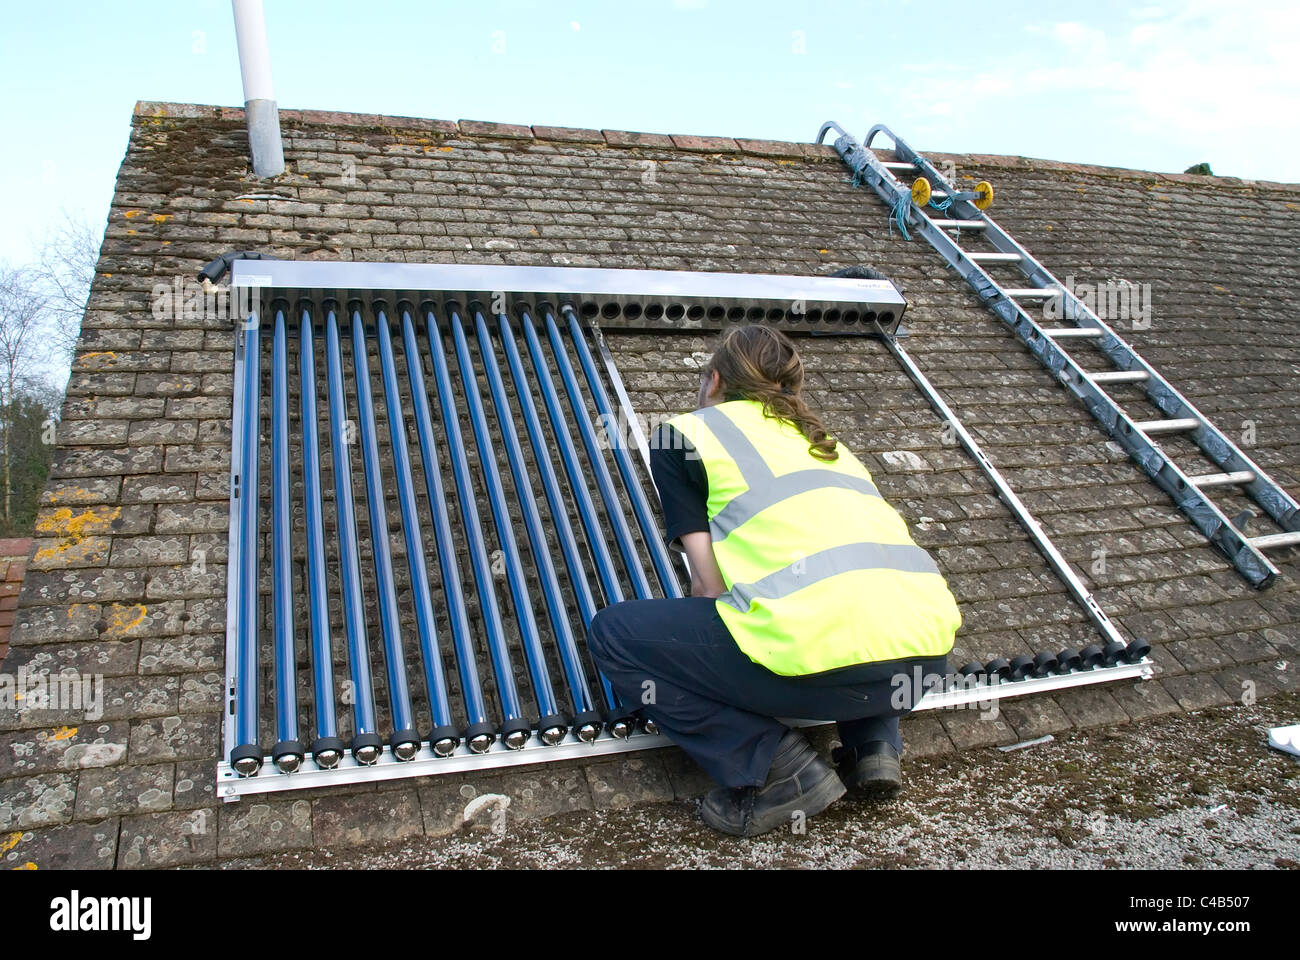 Engineers Installing Solar Thermal Evacuated Tube Array On The Roof Stock Photo 37124759 Alamy - Solar Tube Installation